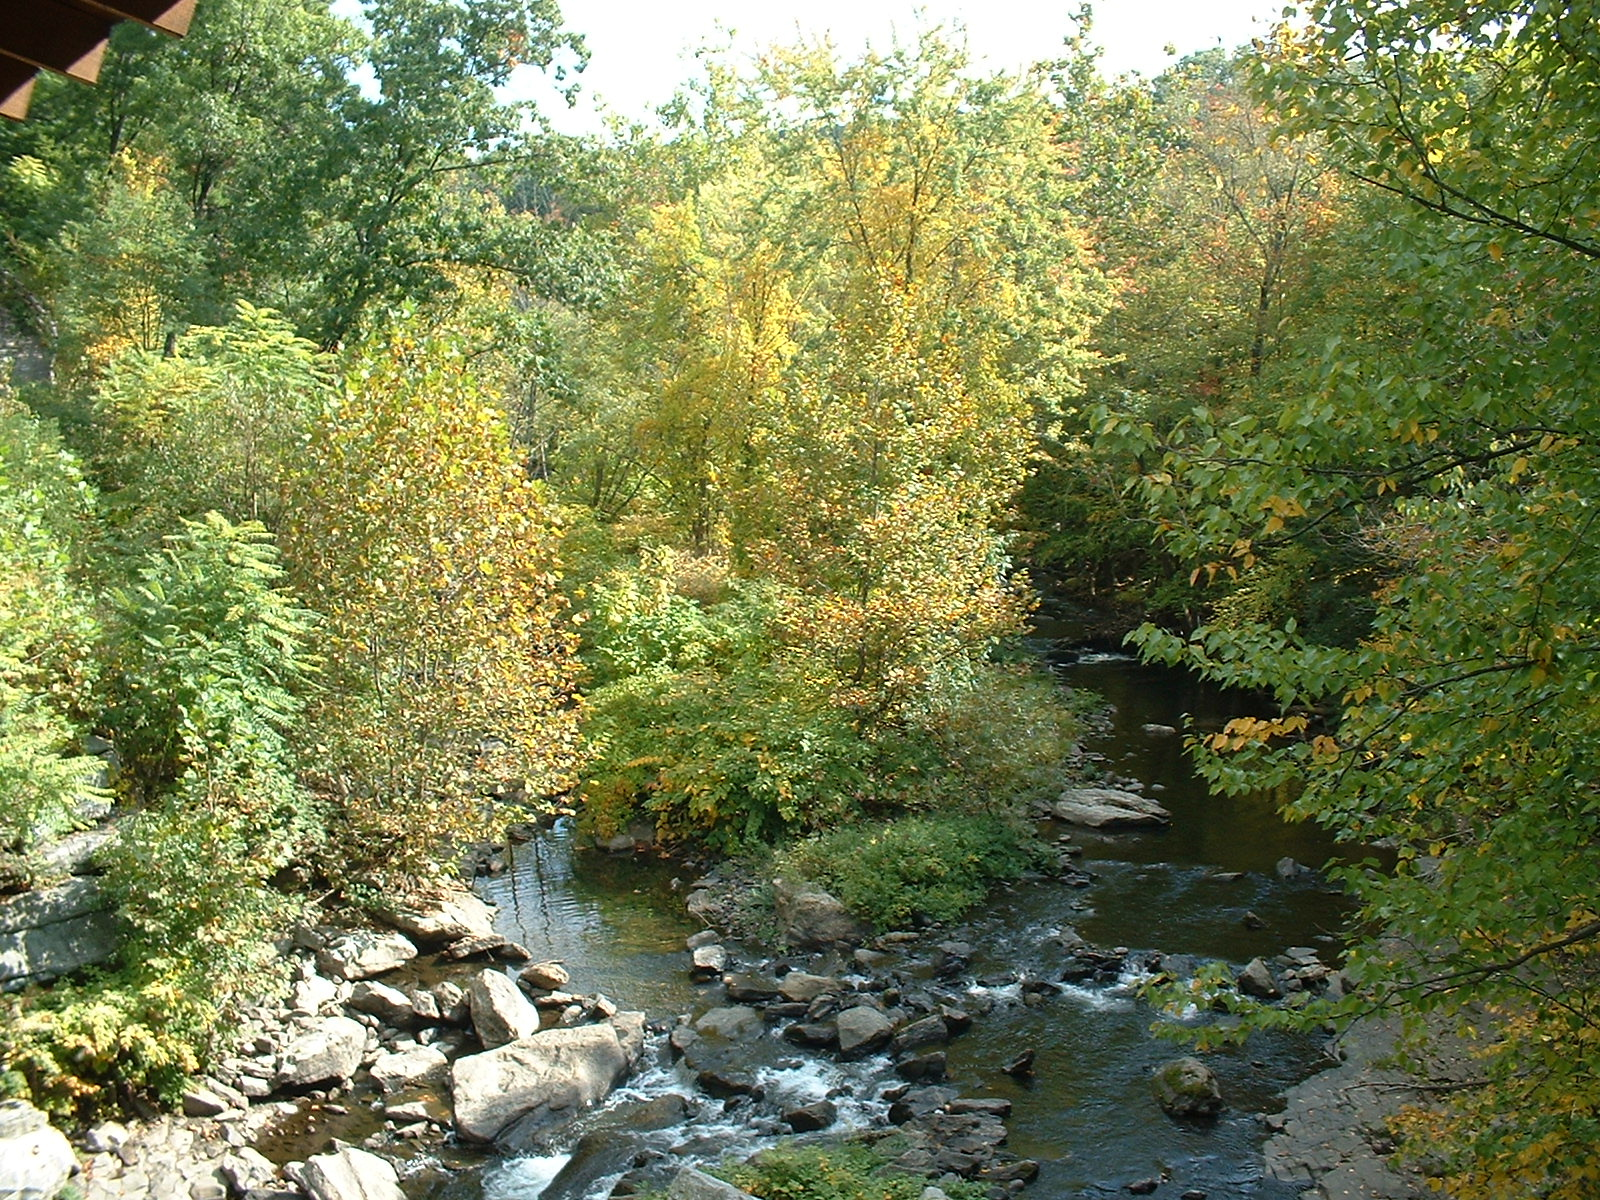 Frank's Place: Roaring Brook